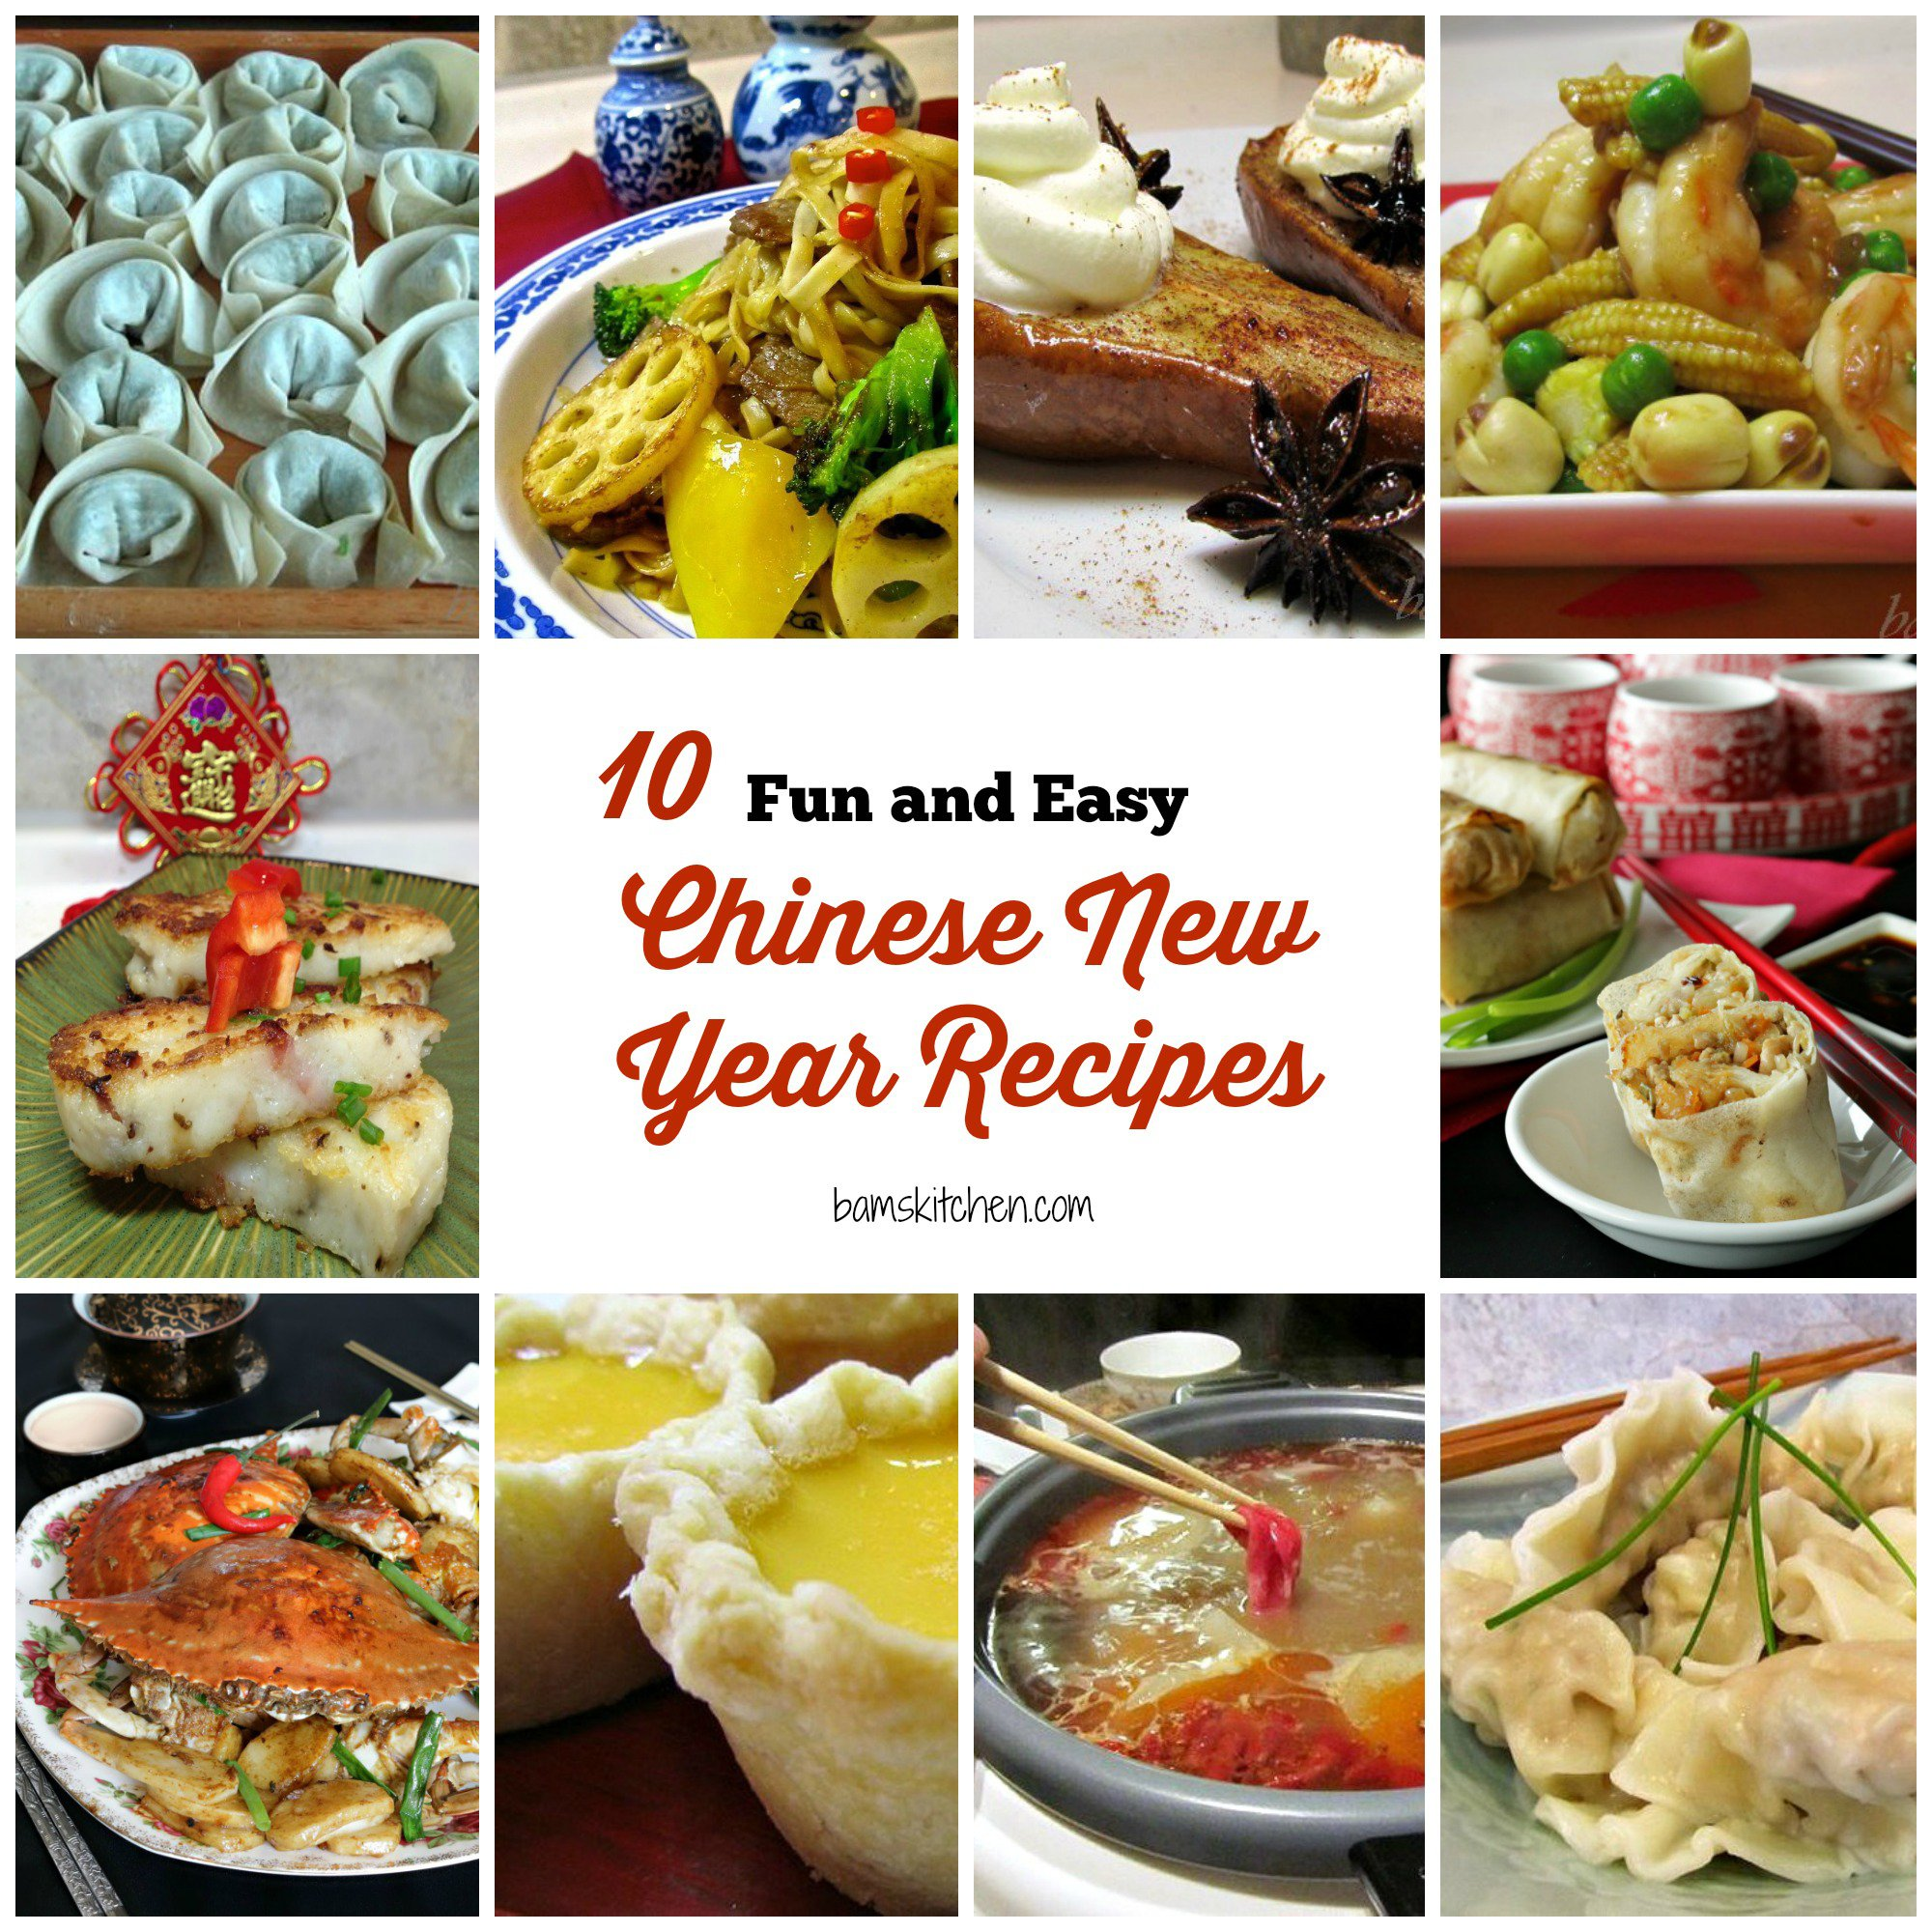 10 fun and easy chinese new year recipes healthy world cuisine 10 fun and easy chinese new year recipes bams kitchen forumfinder Images